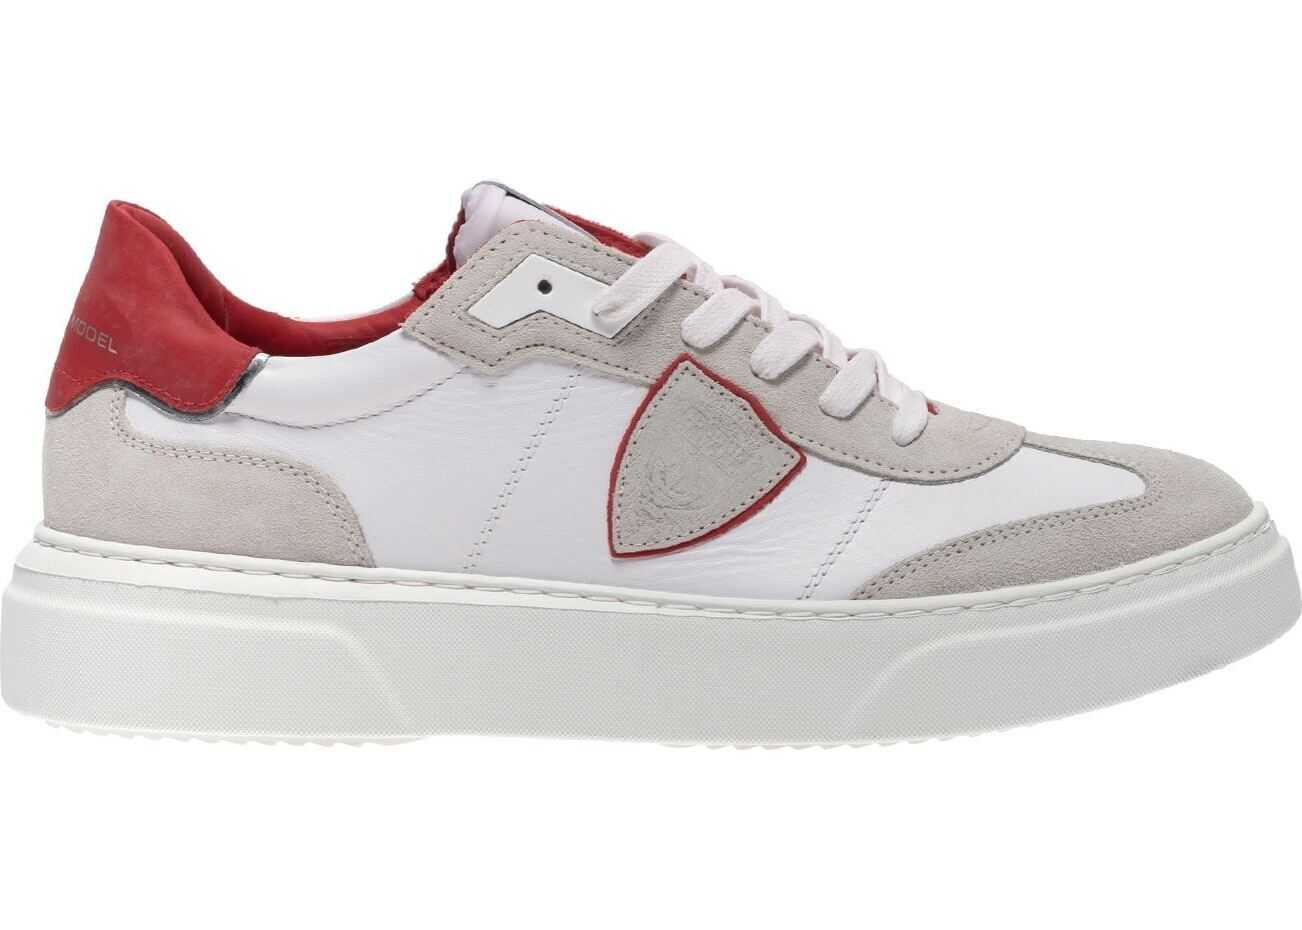 Philippe Model Temple S Mixage Pop Sneakers In Blanc Rouge White